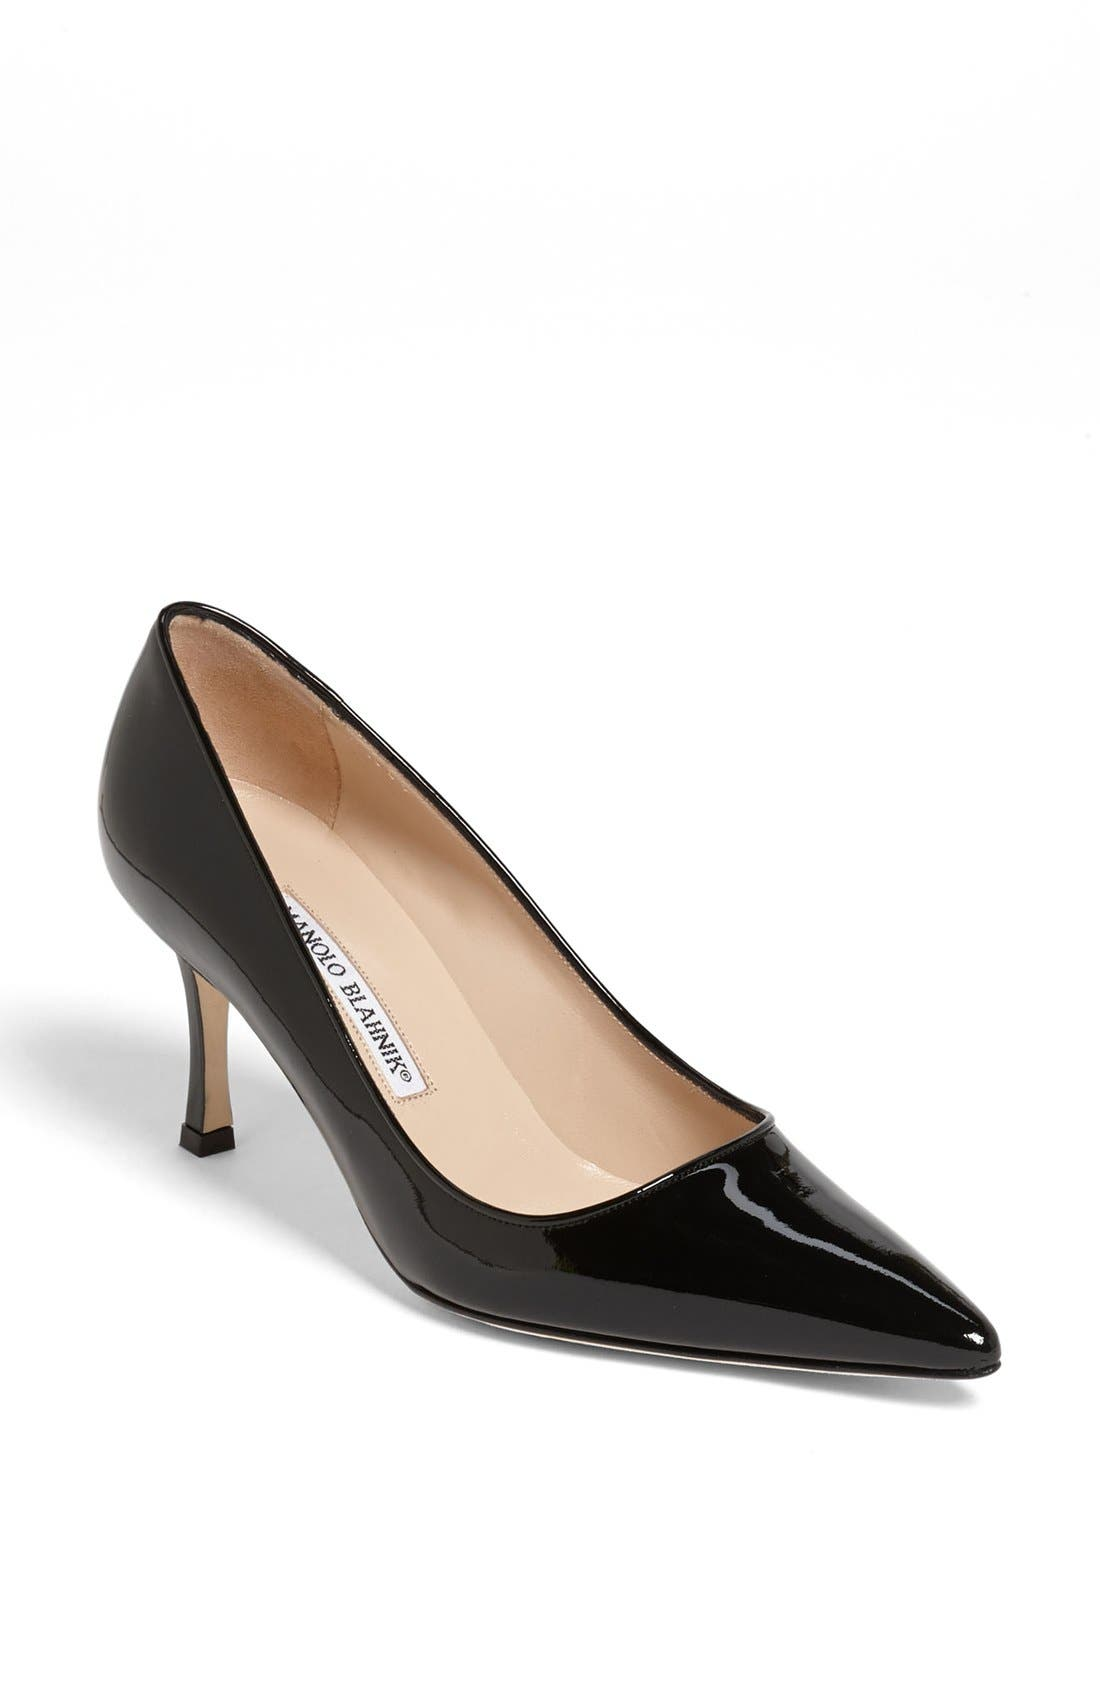 Main Image - Manolo Blahnik 'Newcio' Pump (Women)